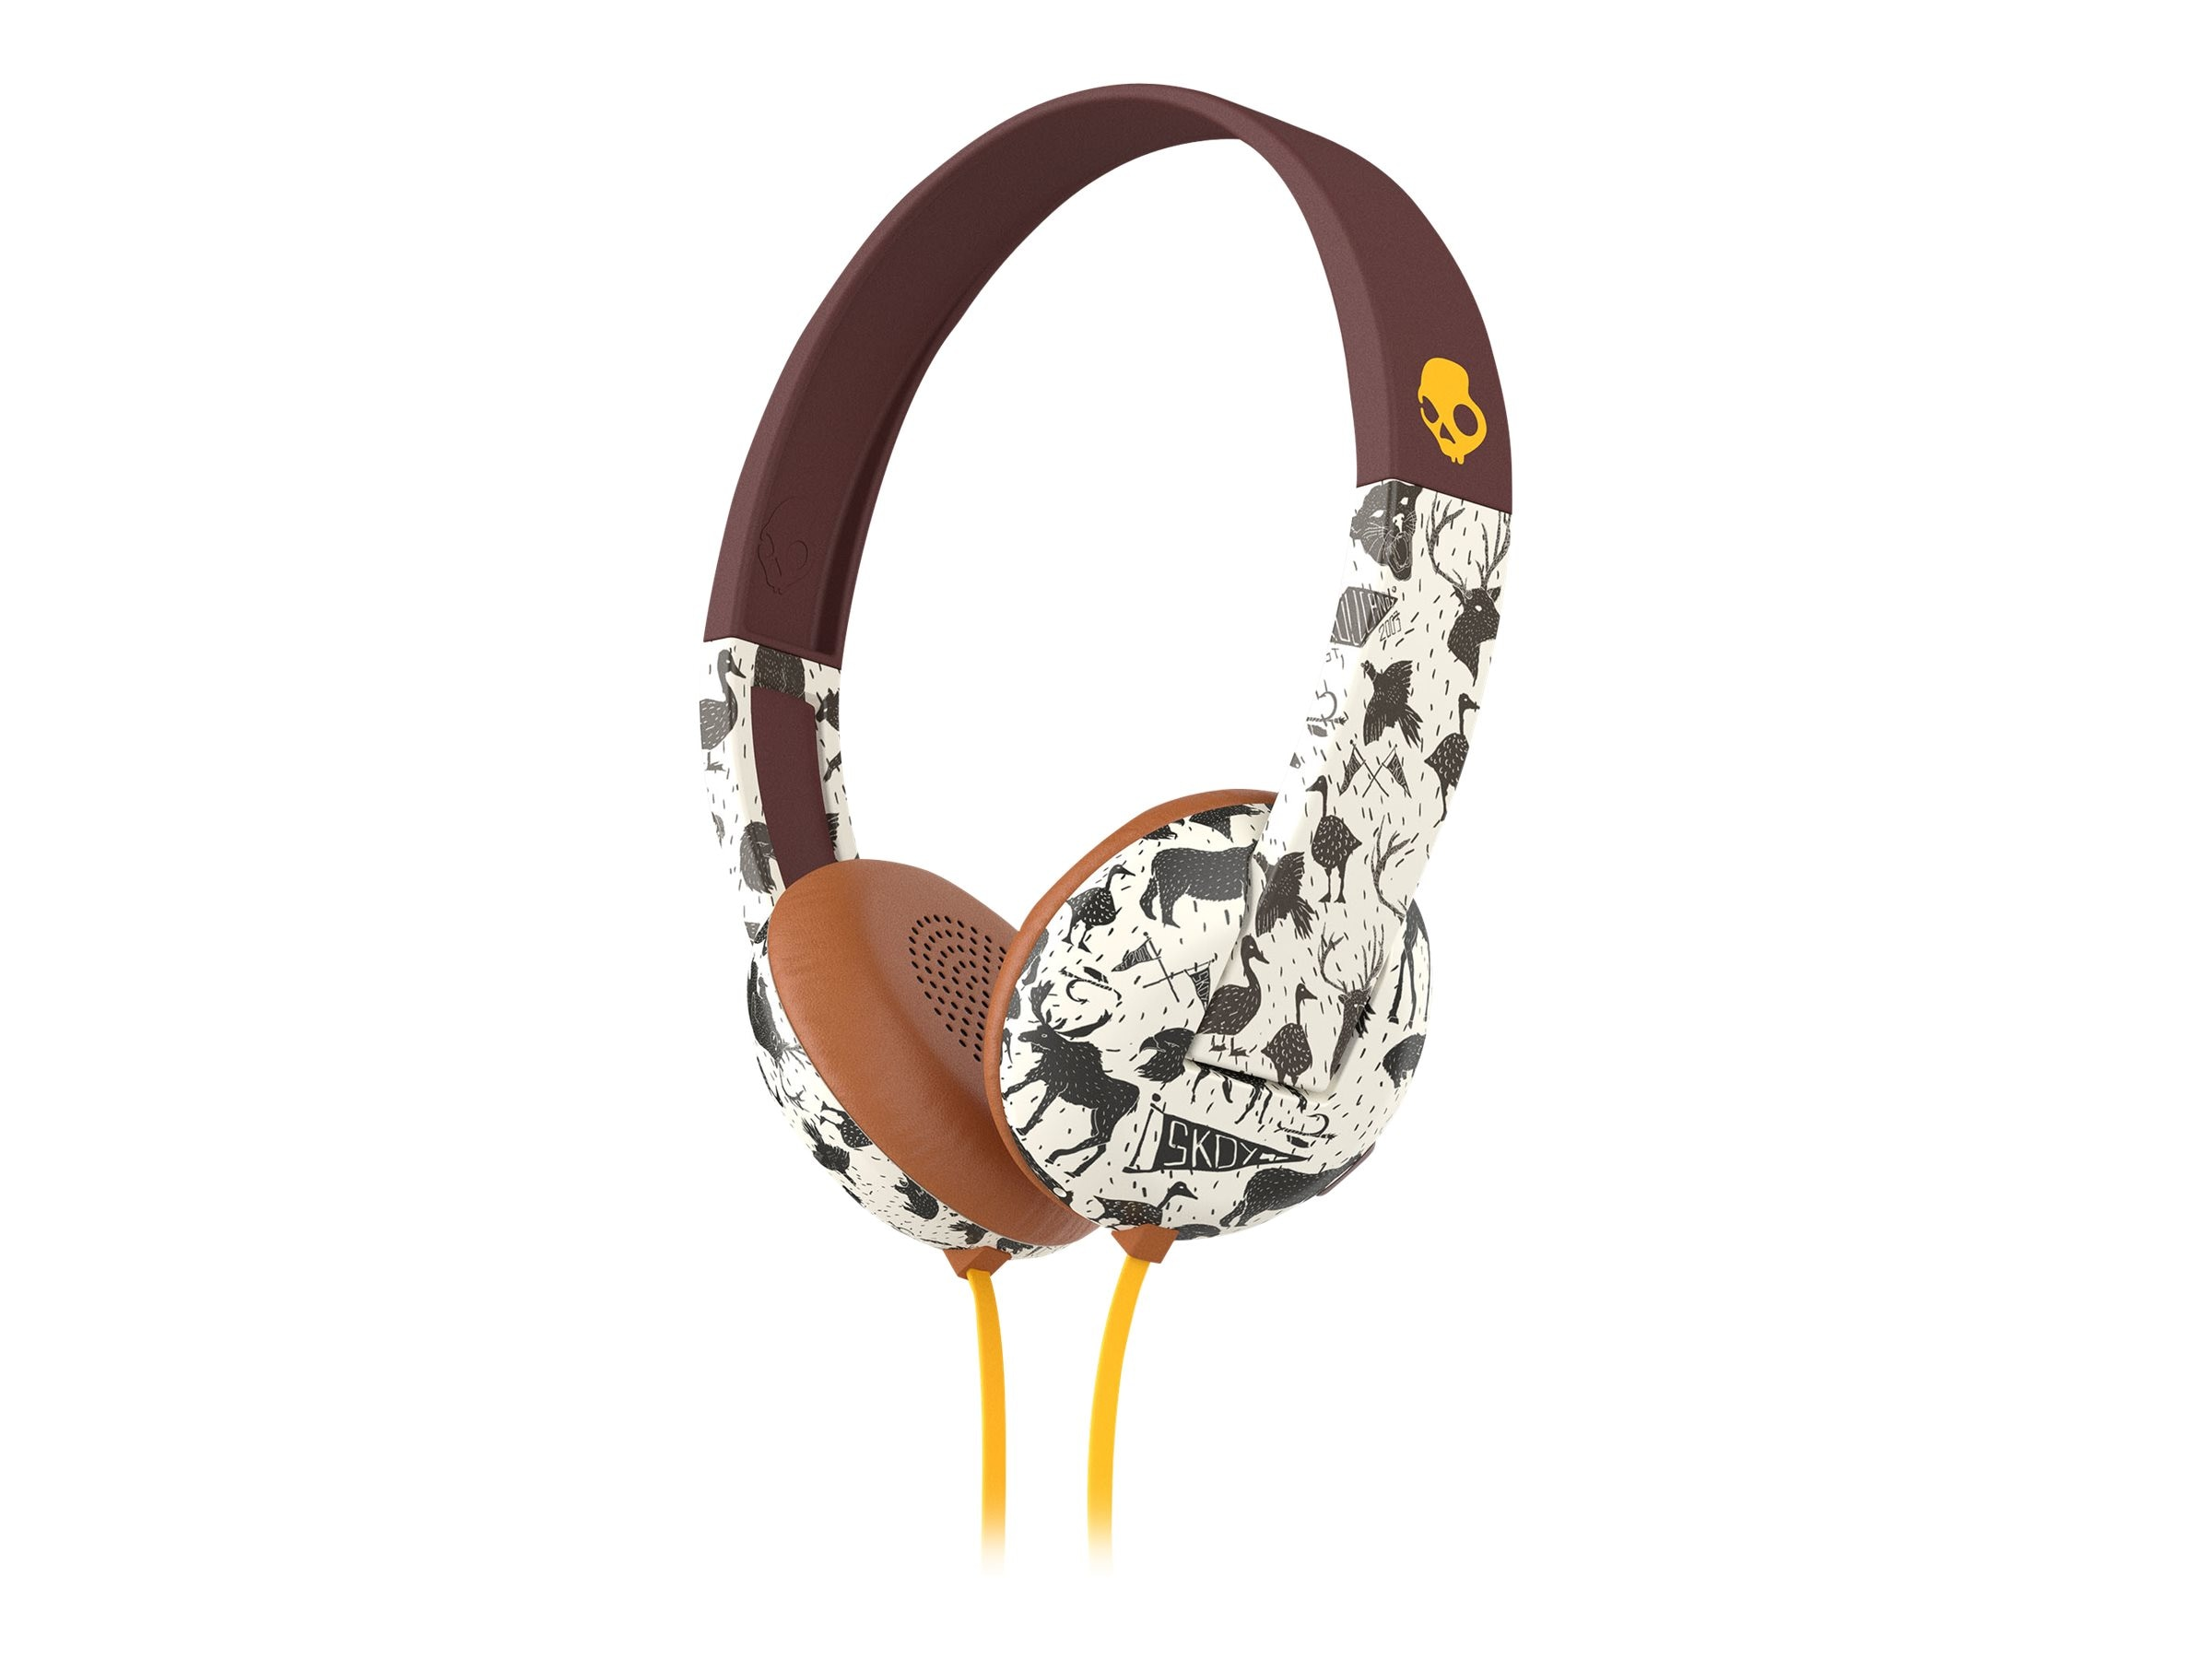 Skullcandy Uproar Headphones - Explore Animal Mustard, S5URHT-452, 23836791, Headsets (w/ microphone)